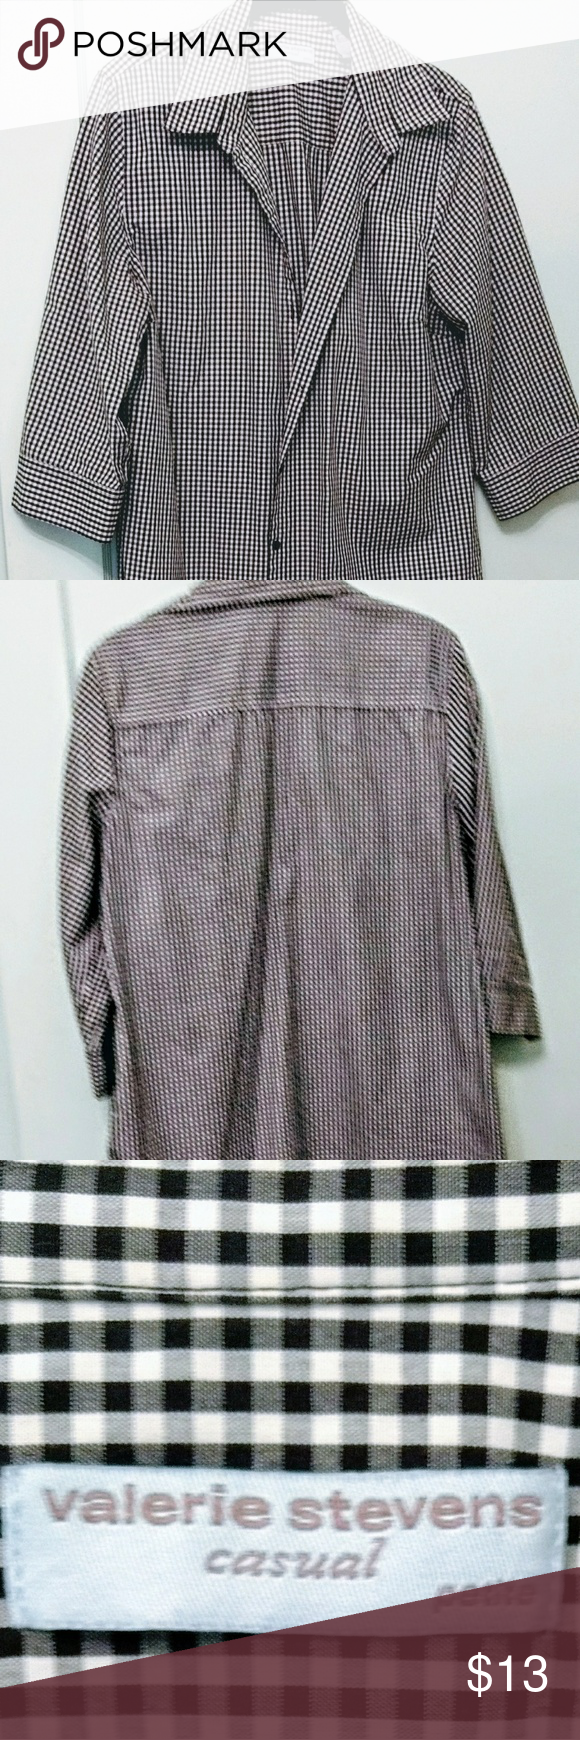 Valerie Stevens Petites 3/4 Sleeve Blouse This Valerie Stevens blouse is a fun black & white check pattern with 3/4 sleeves and black buttons. It is 100 percent cotton. Care: machine wash; tumble dry medium My favorite with this blouse is white jeans. Valerie Stevens Tops Blouses